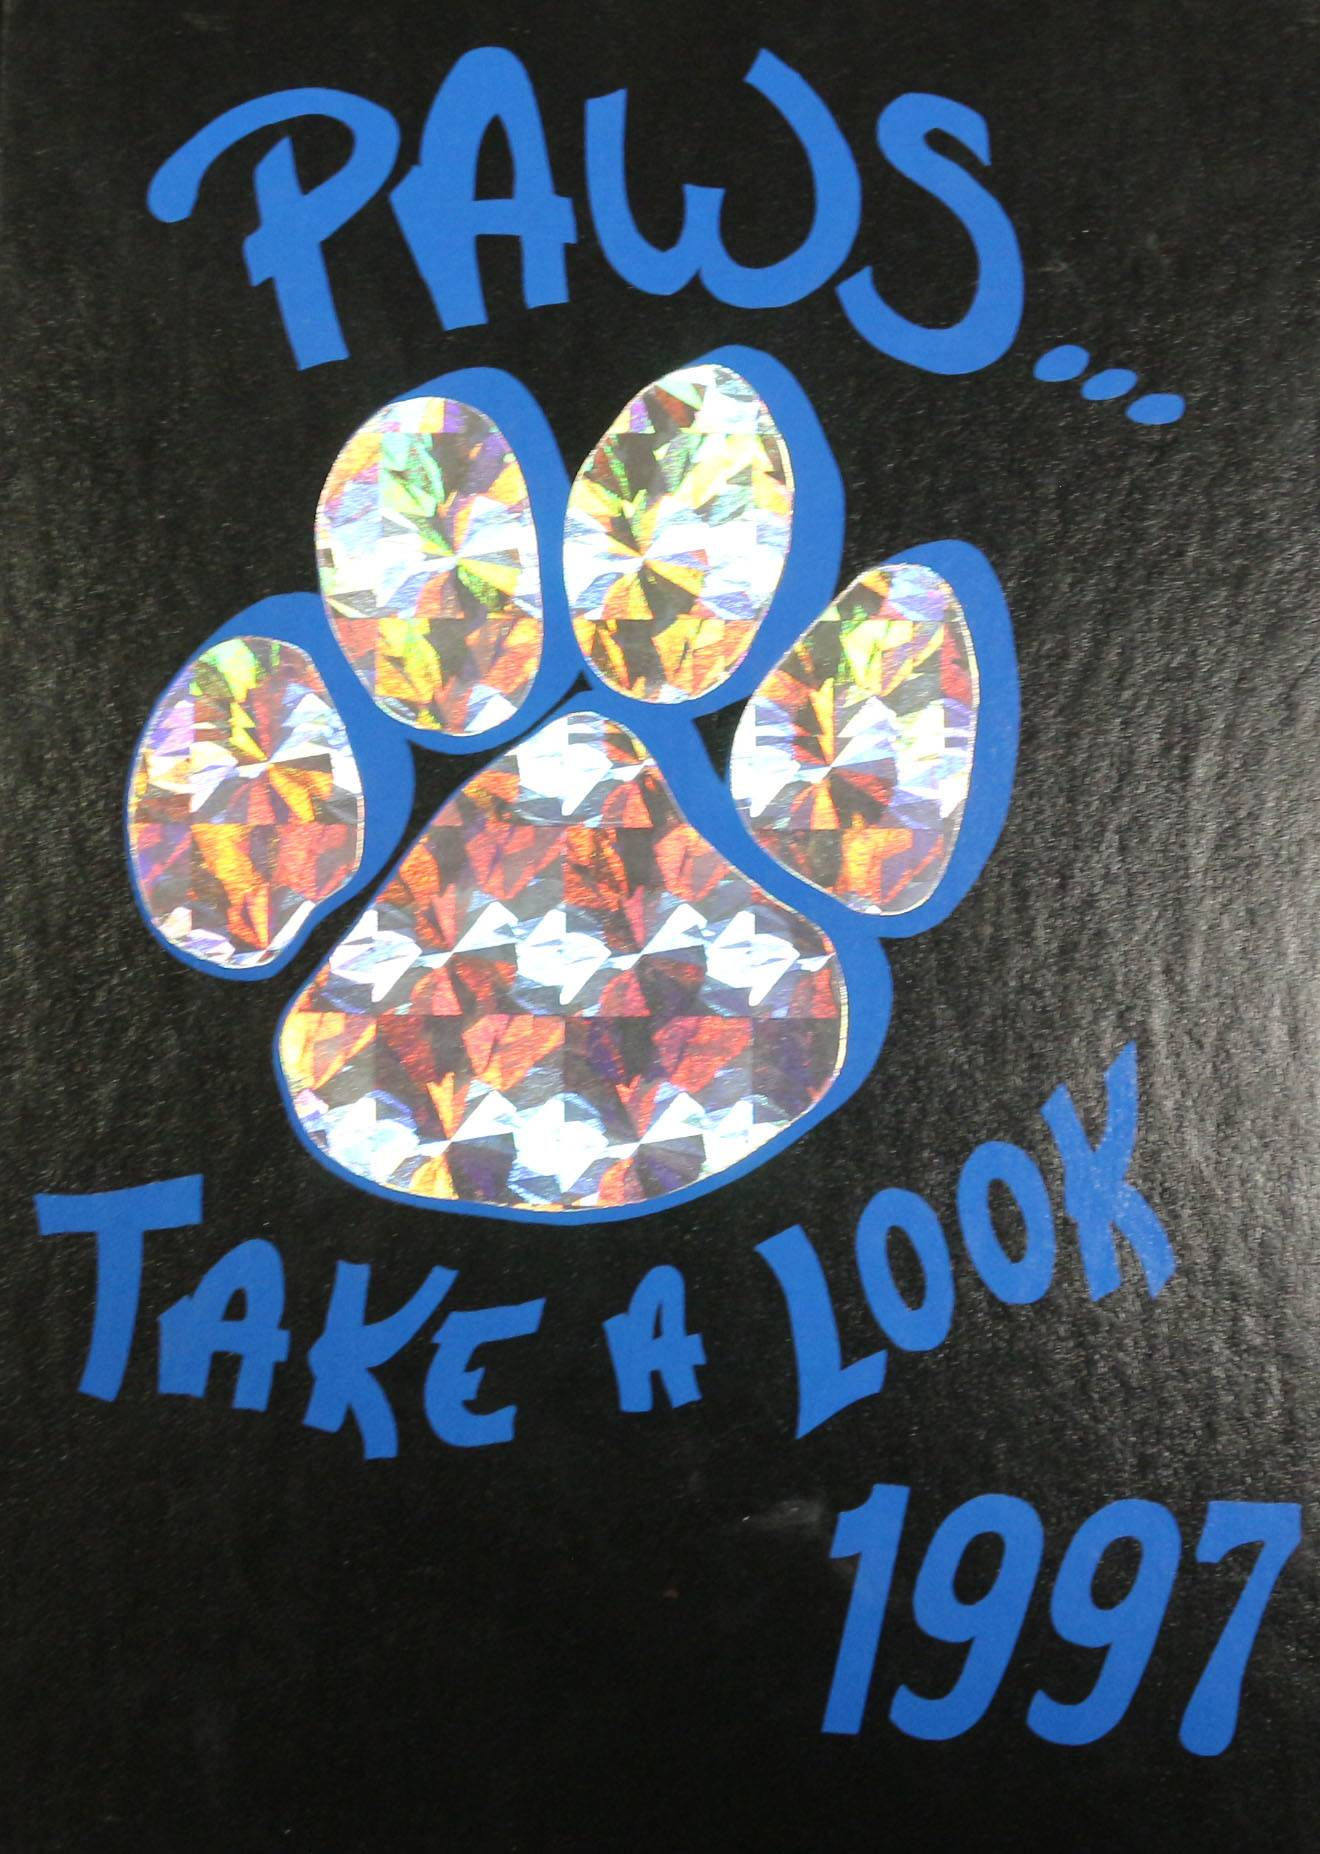 1997 Yearbook Cover Page